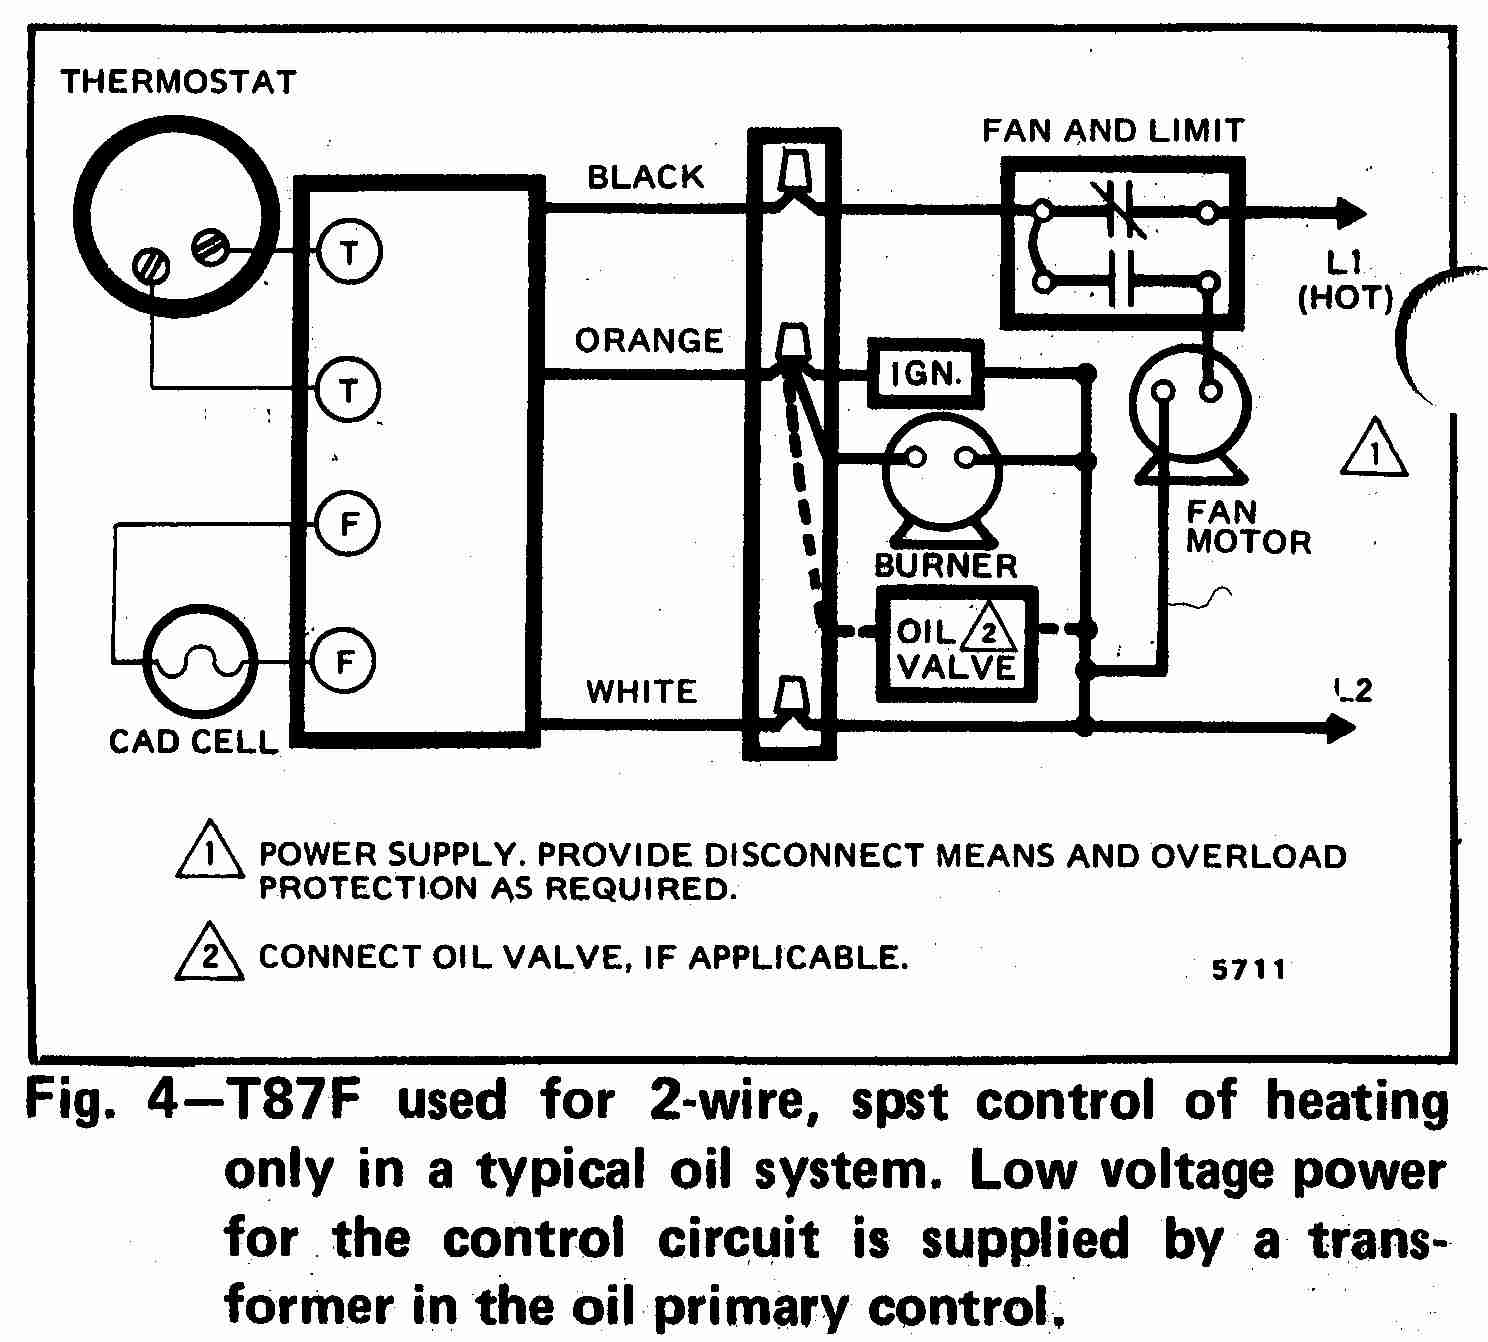 TT_T87F_0002_2W_DJF hvac control wiring diagram hvac compressor wiring diagram \u2022 free honeywell pressure switch wiring diagram at love-stories.co